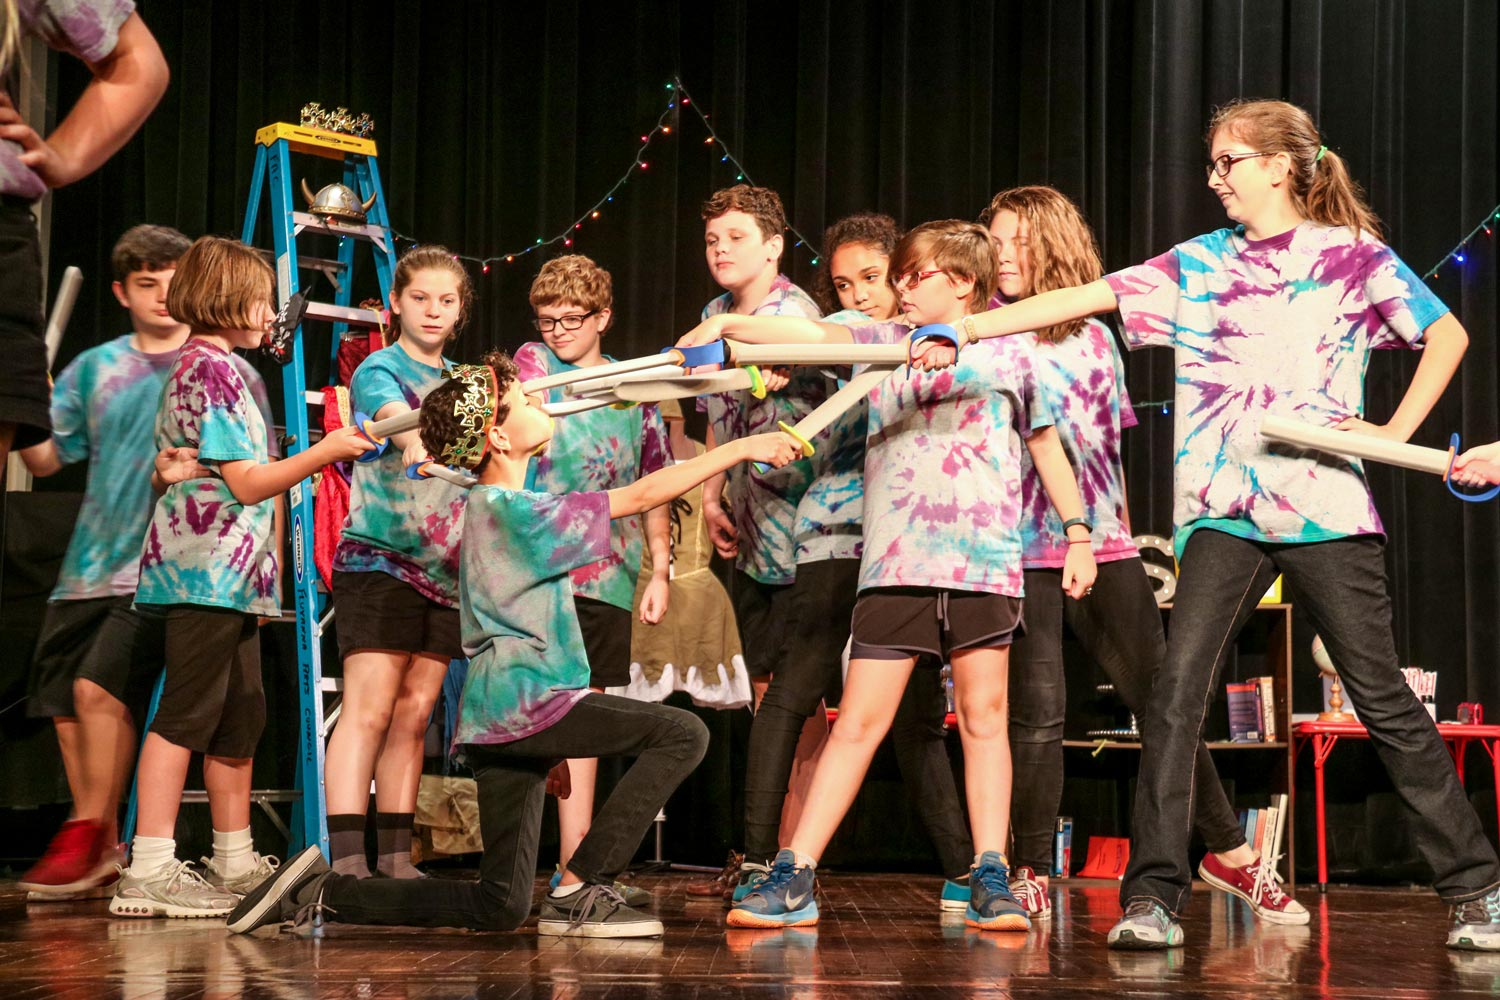 Harris has spent her summer running theater camps for elementary and middle school students in Fluvanna County.